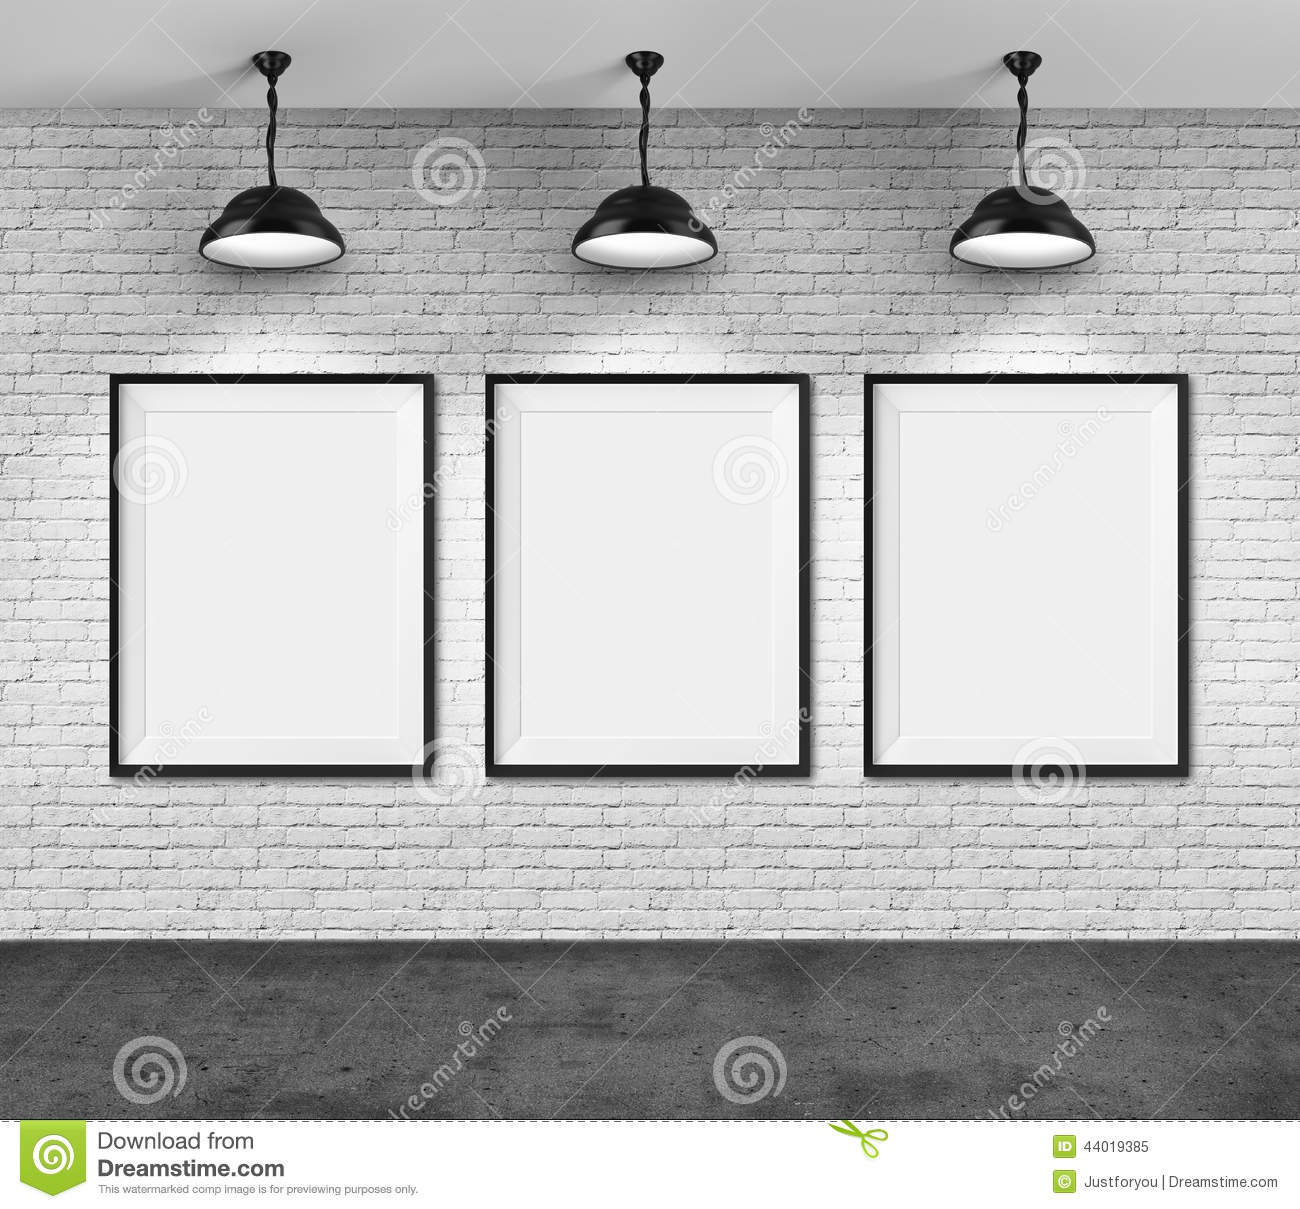 Art Gallery Wall backgrounds for art gallery wall backgrounds | www.8backgrounds